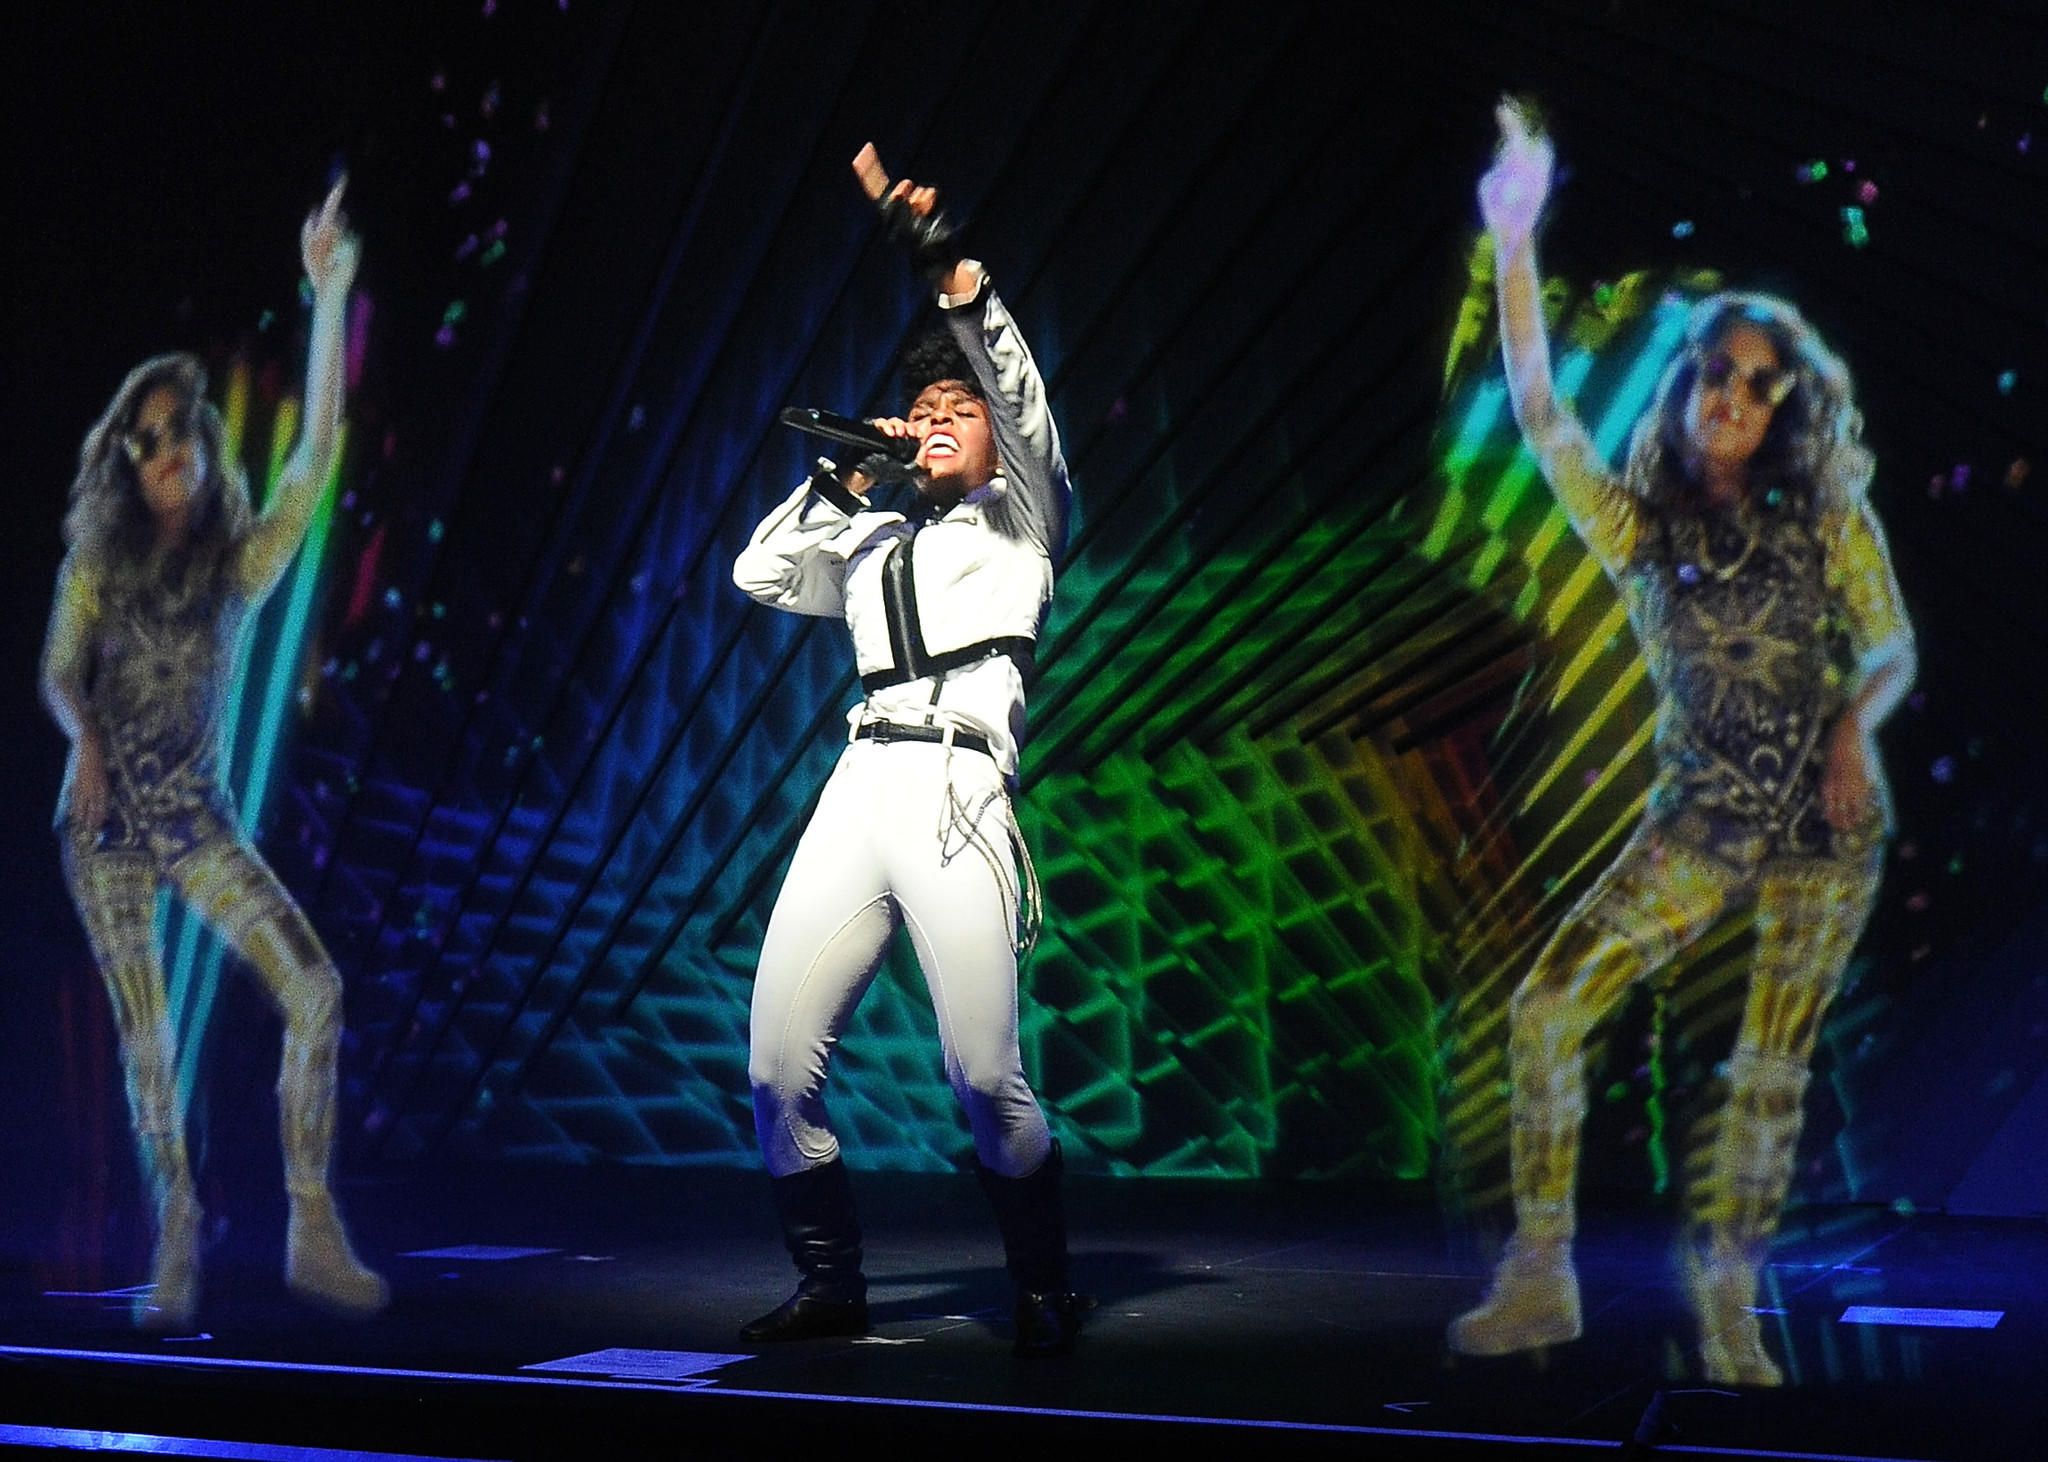 Janelle Monae, center, performs alongside holograms of M.I.A. during a launch party for the Audi M3 on April 3, 2014.